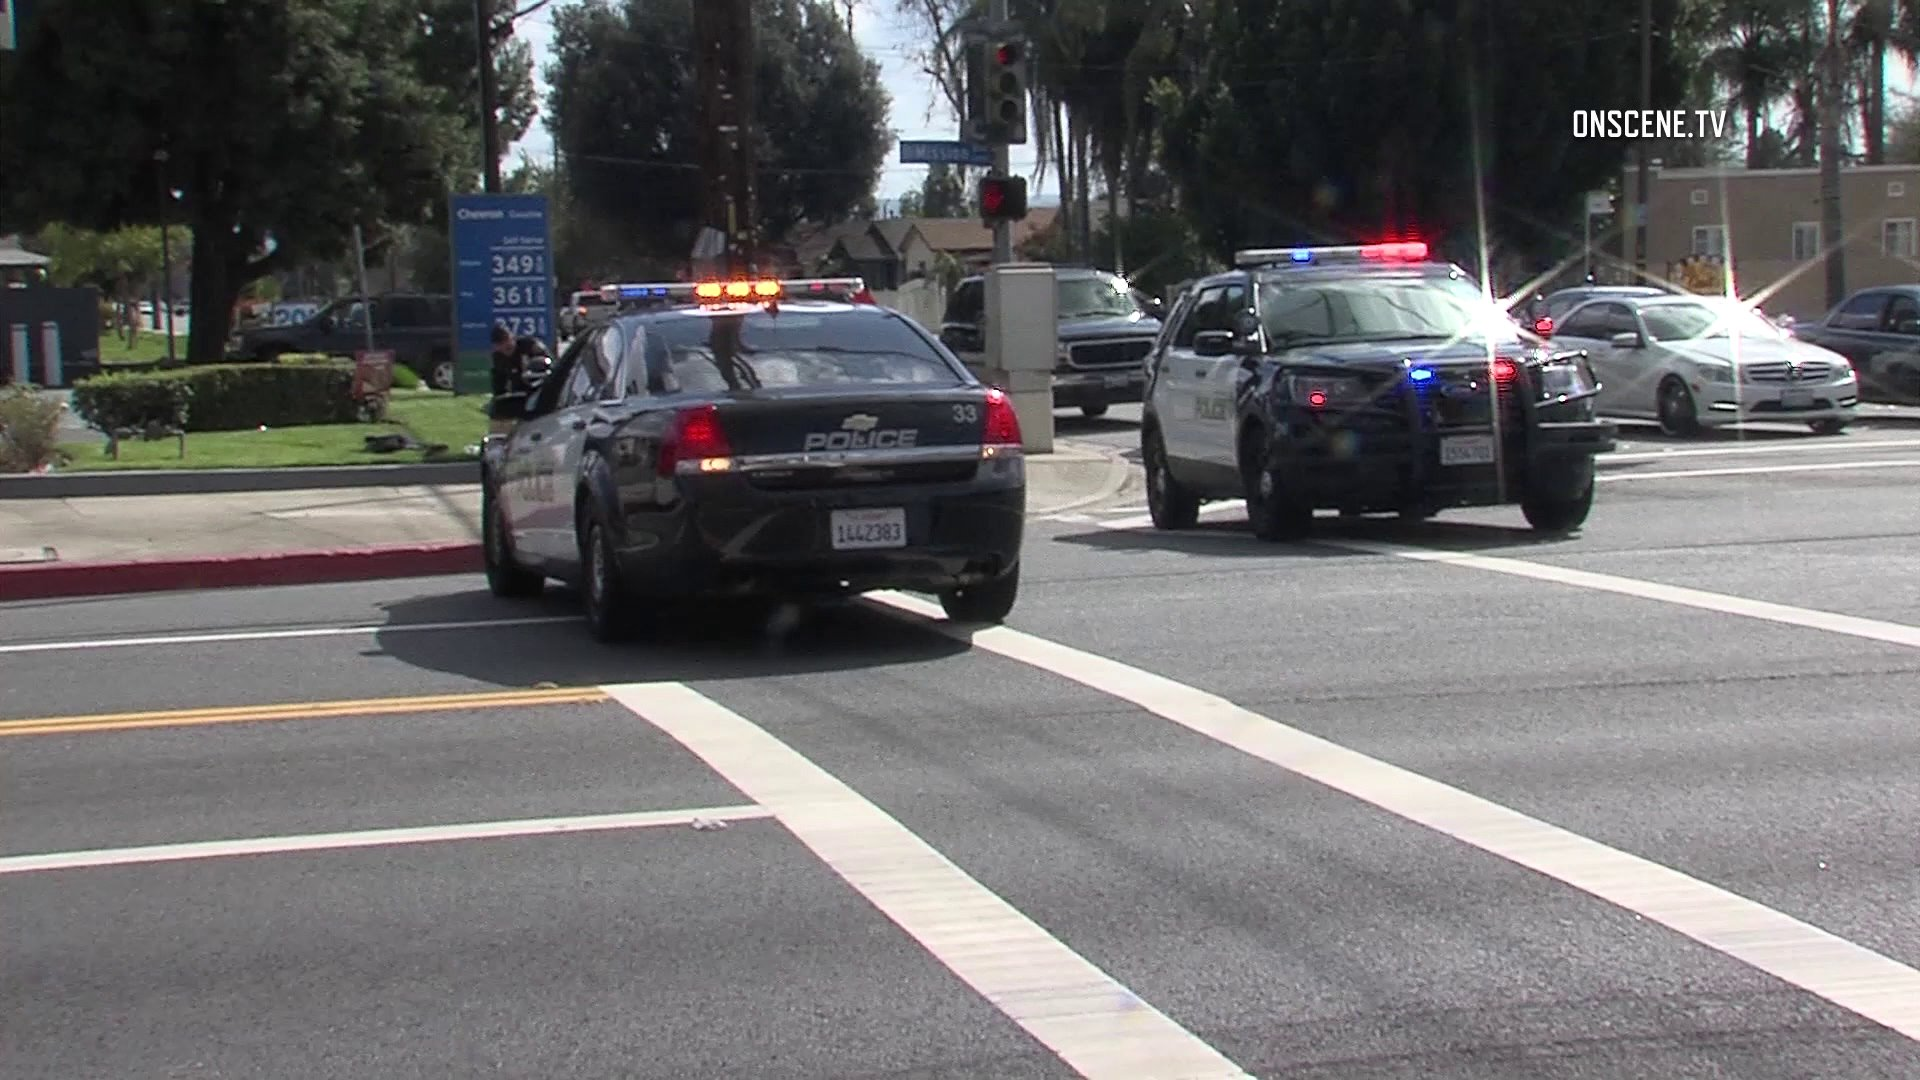 Police investigate the scene of a stabbing that left a woman dead and a man injured outside a homeless shelter at 1400 E. Mission Blvd. in Pomona on March 9, 2019. (Credit: OnScene)